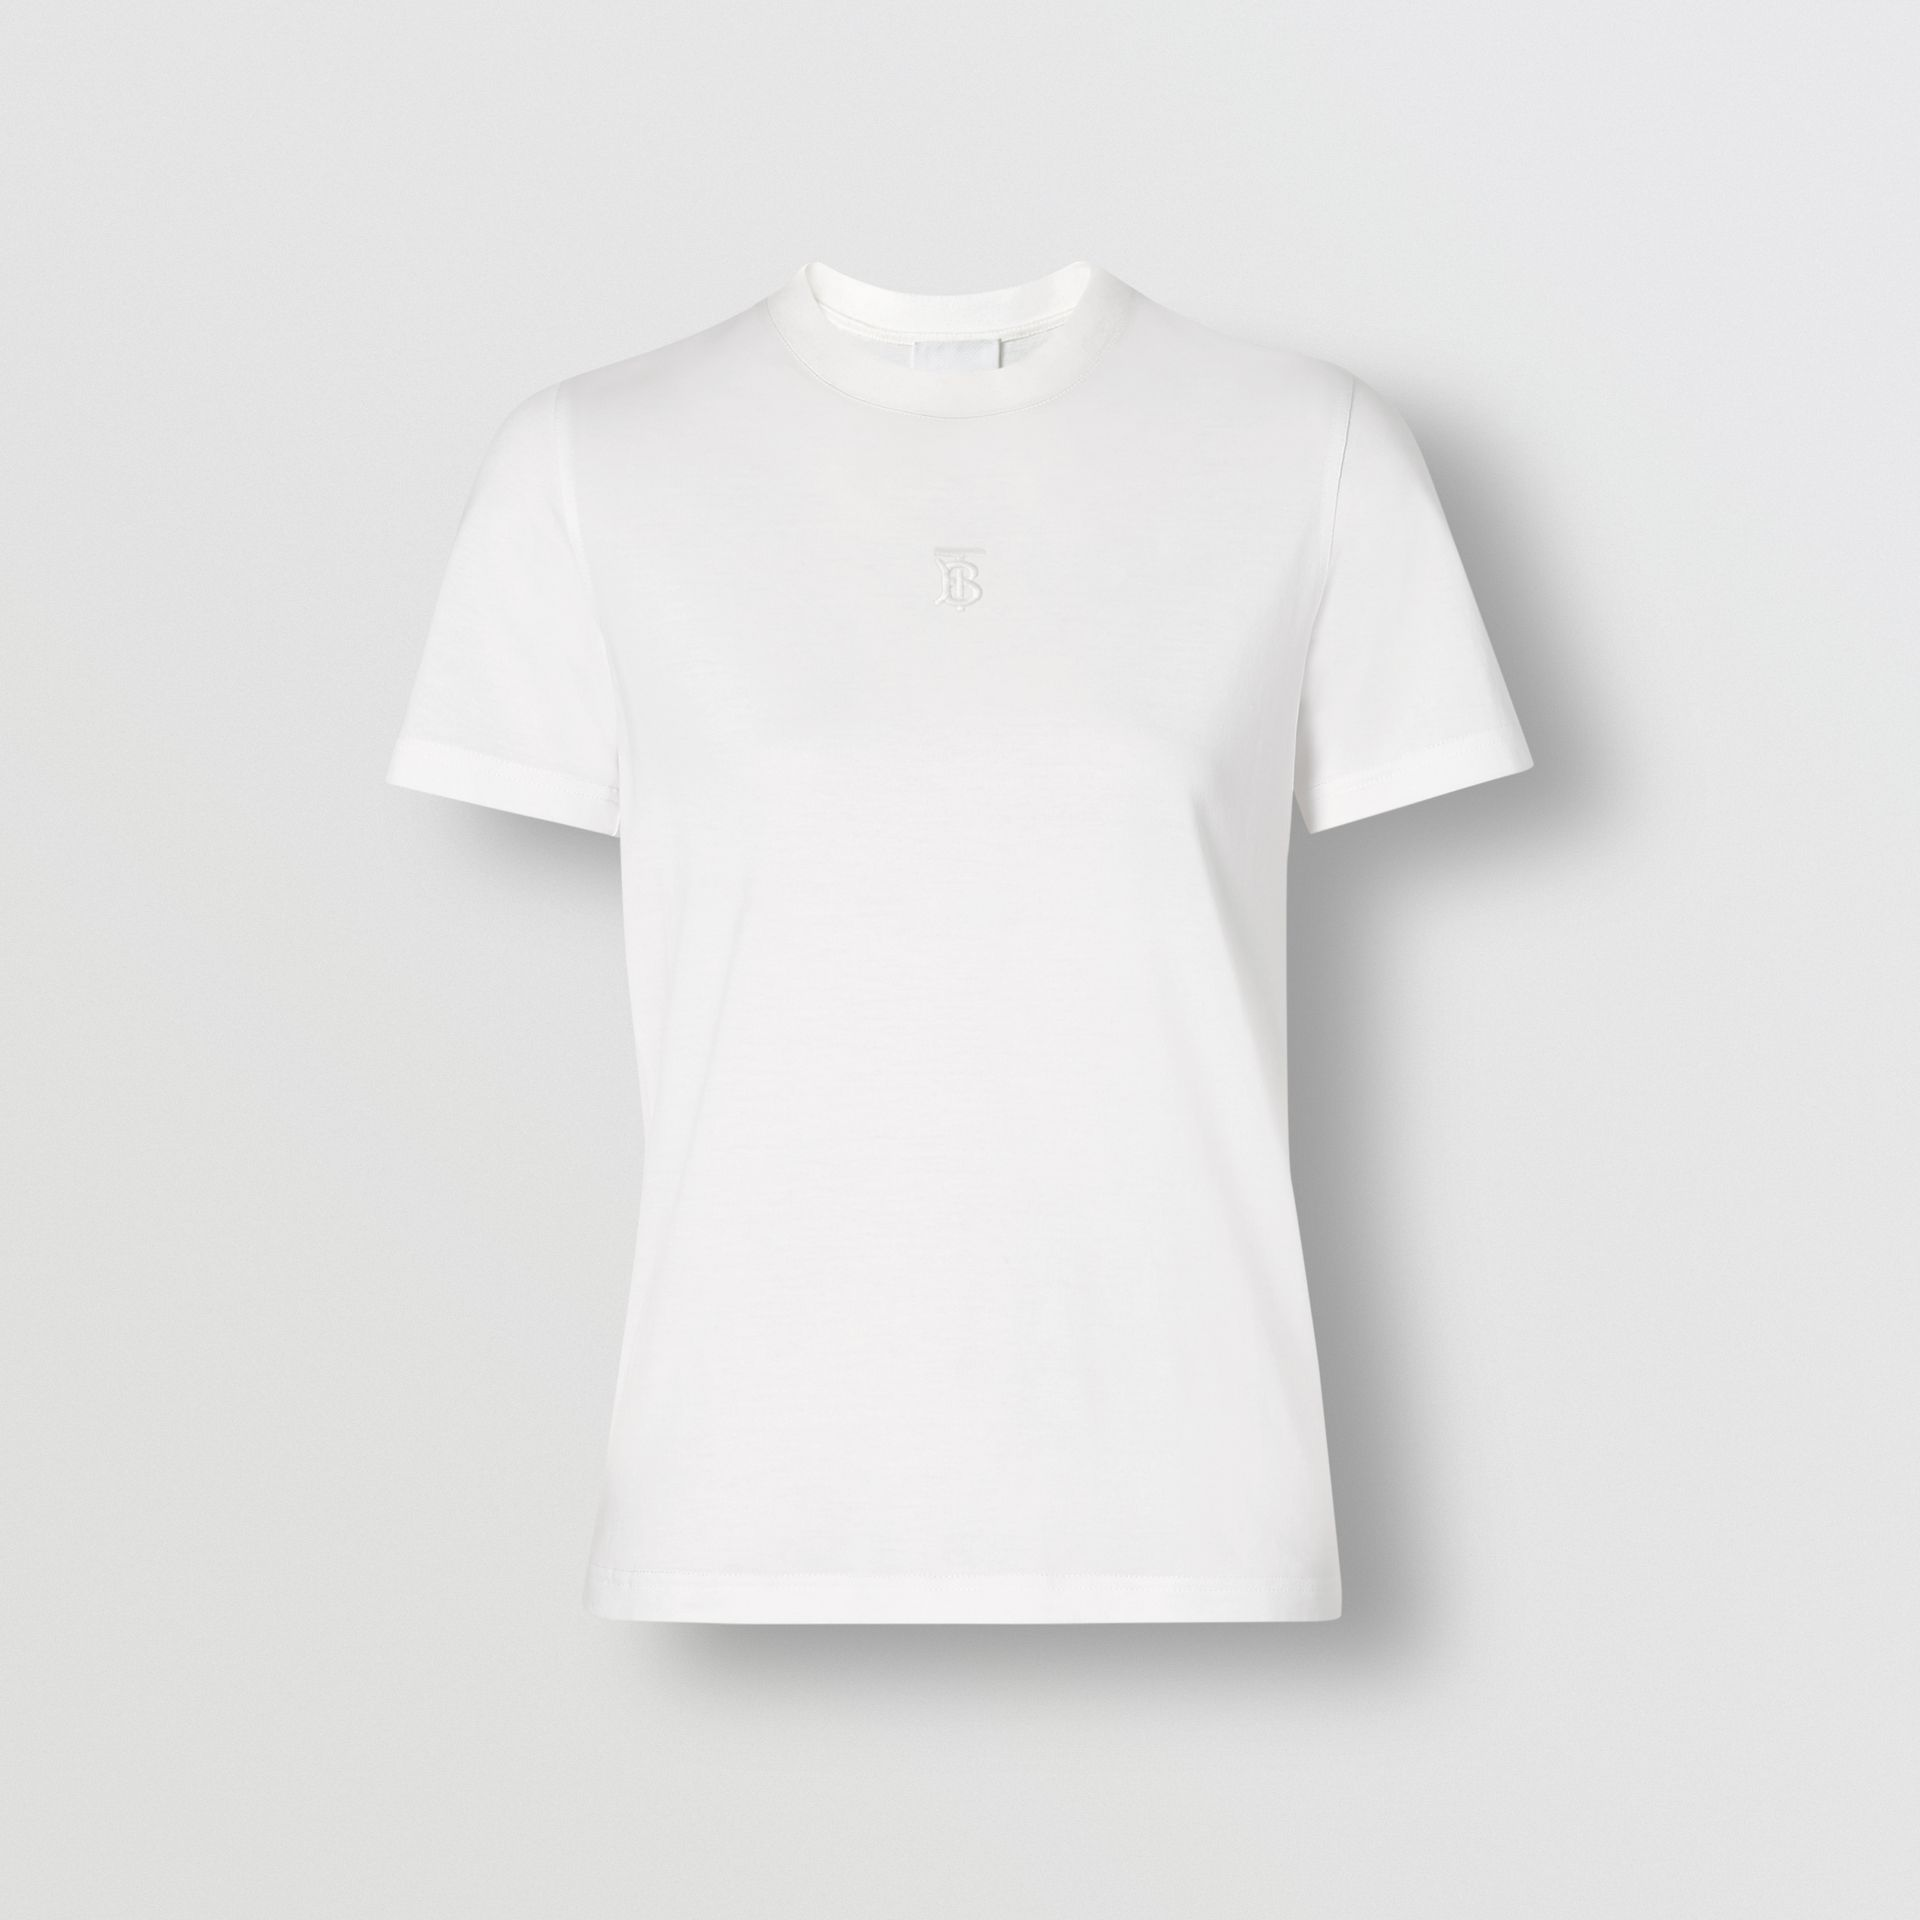 Monogram Motif Cotton T-shirt in White - Women | Burberry - gallery image 3